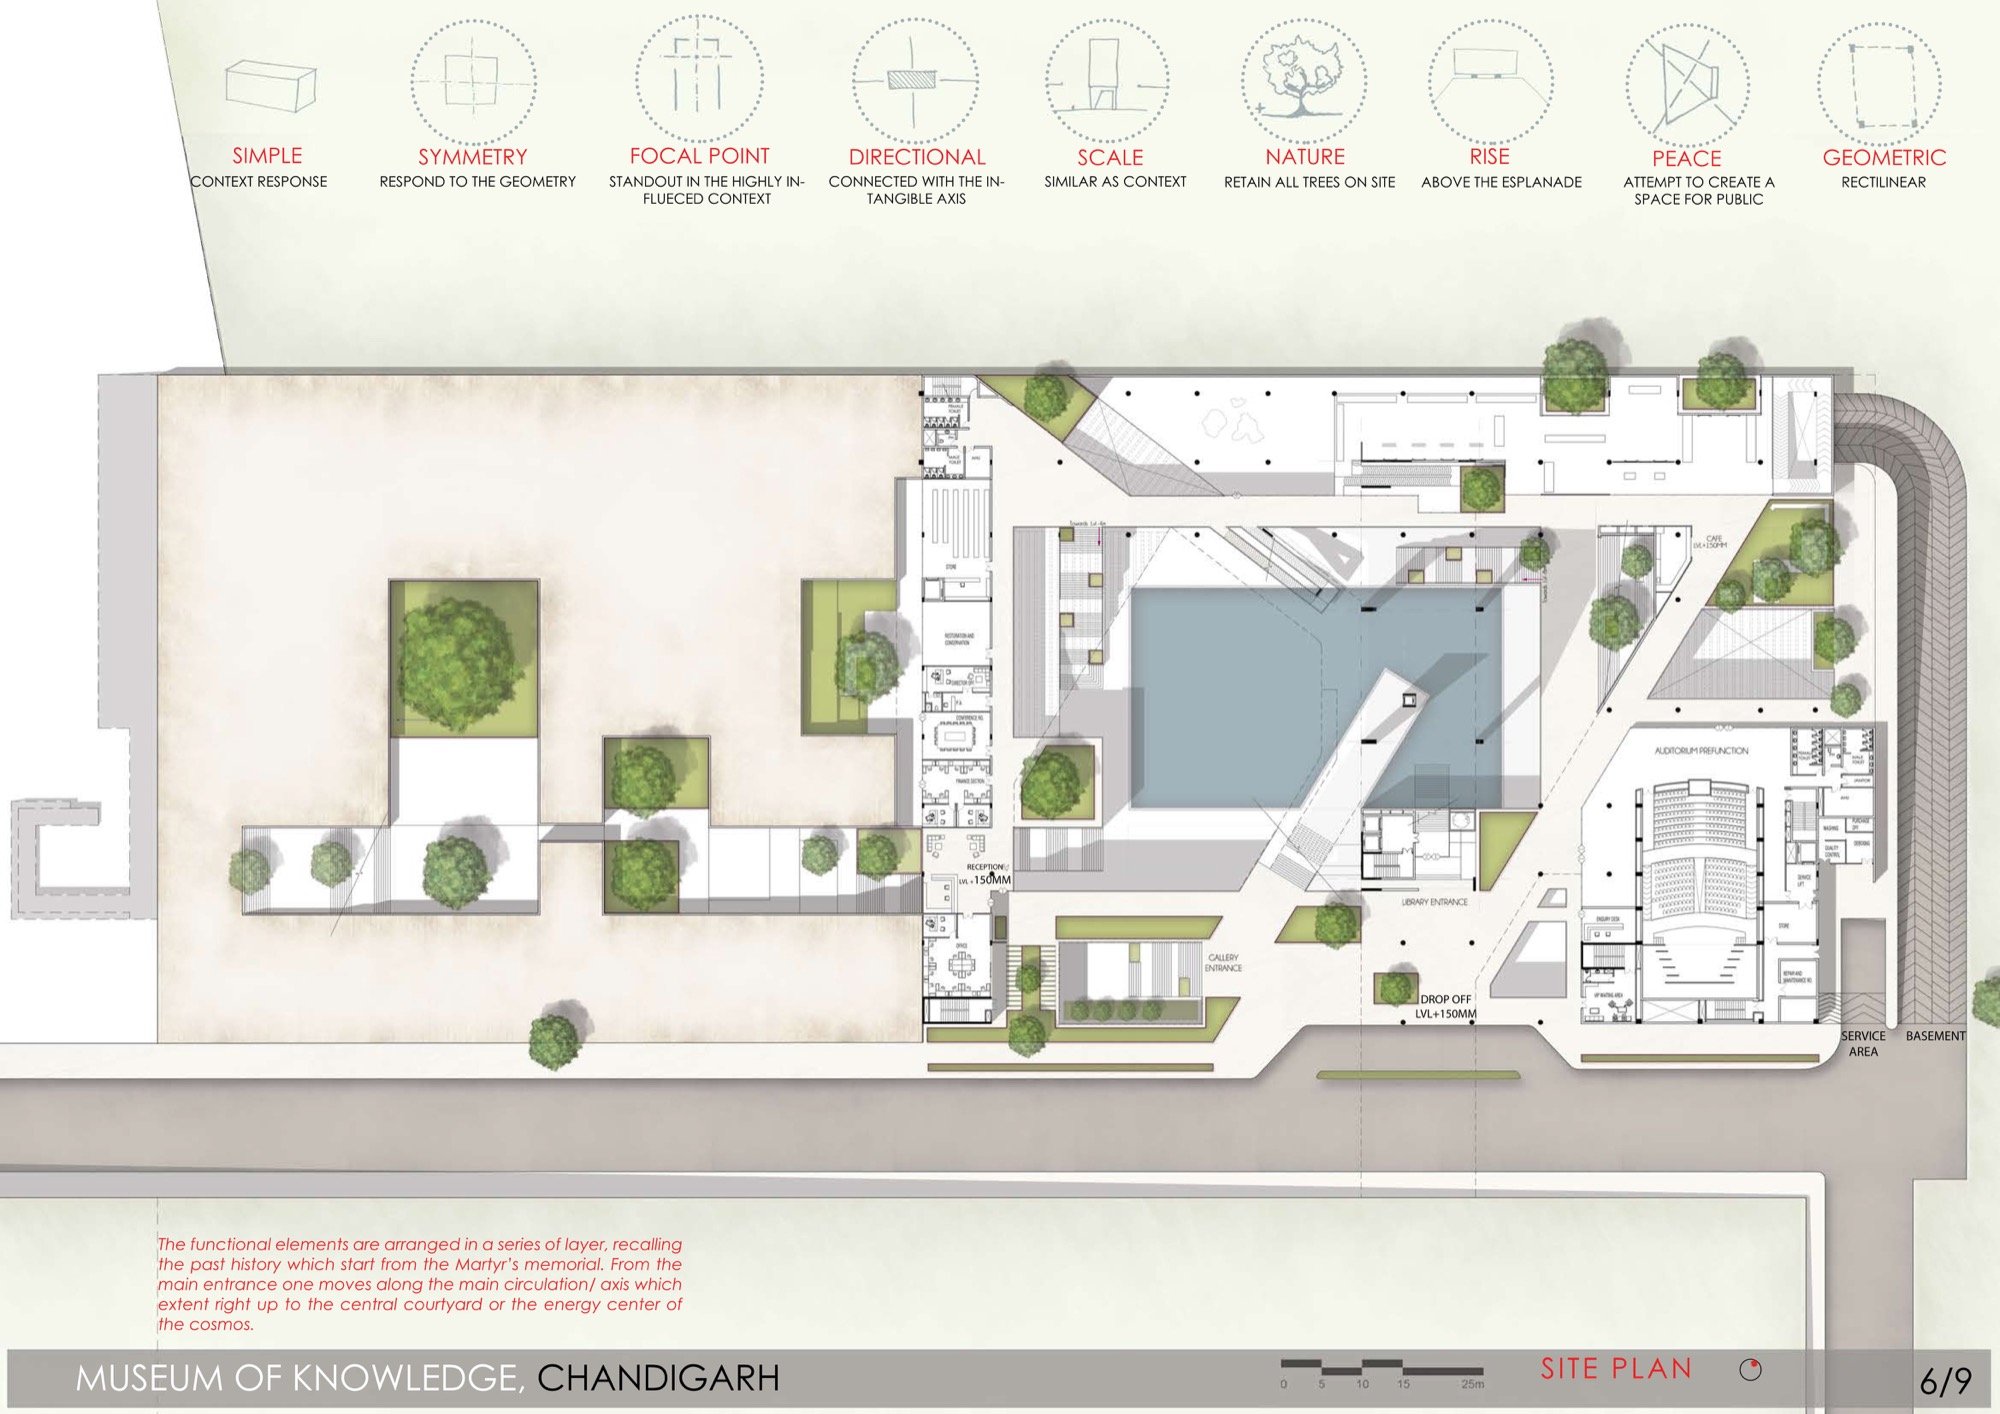 B.Arch Thesis: Museum of Knowledge, Chandigarh, by Nikhil Pawar 19